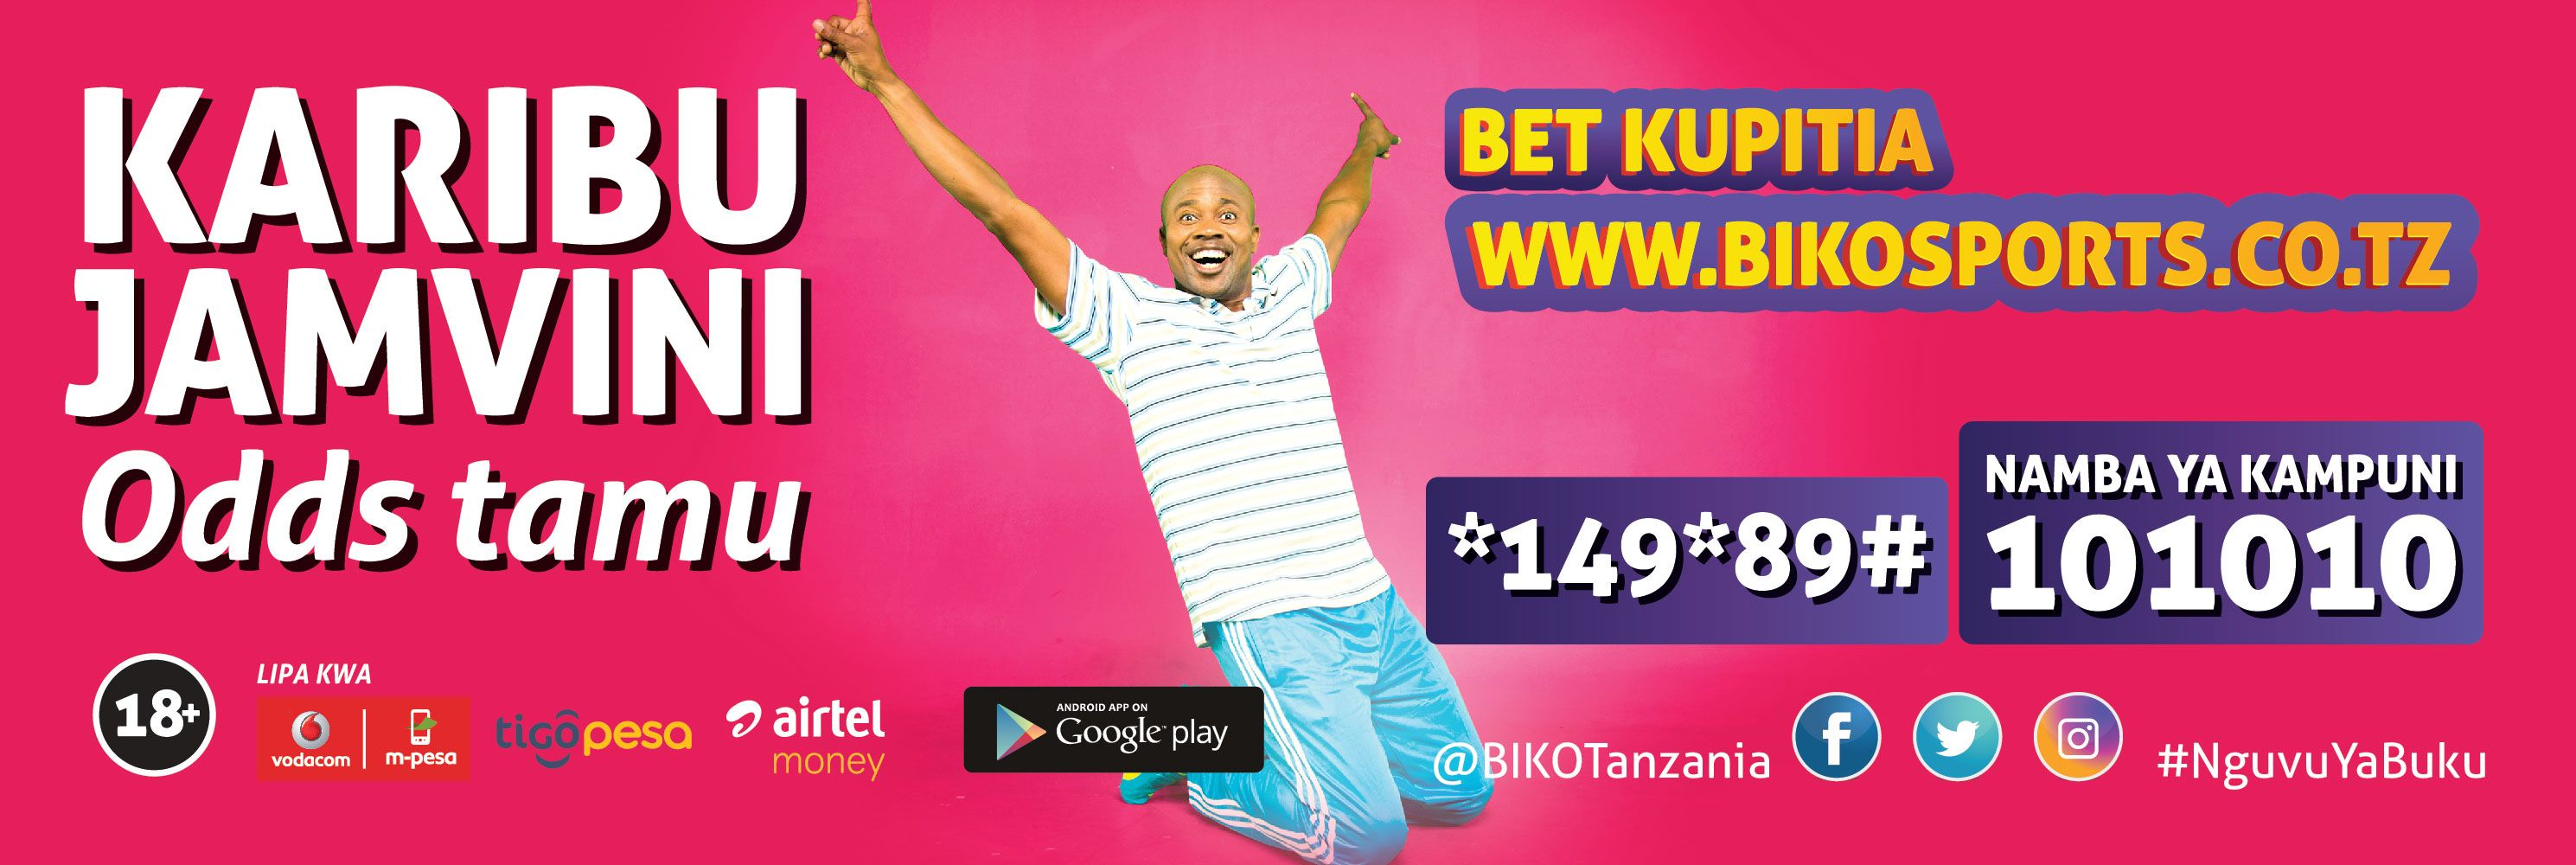 With each goal, win huge cash prizes with Biko Sports app